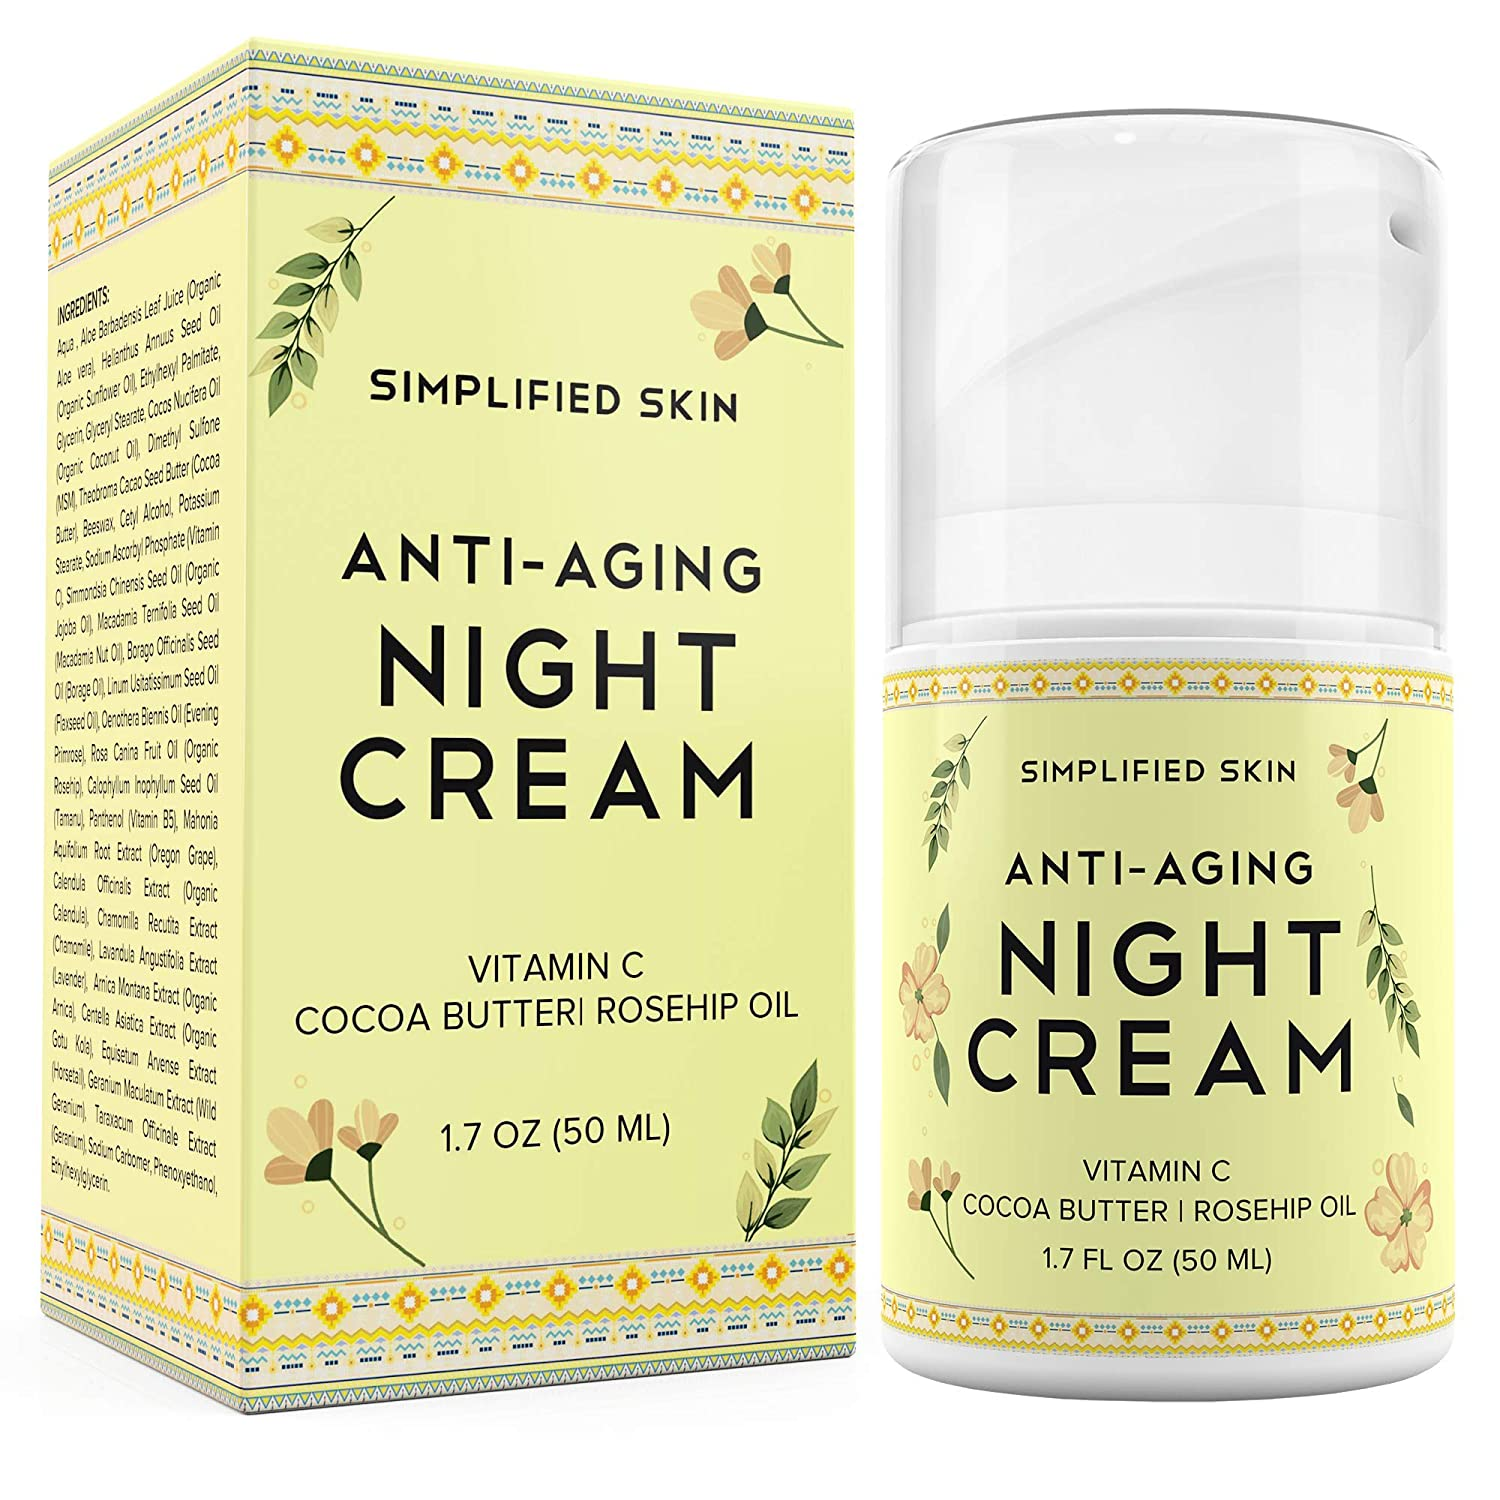 Anti-Aging Night Cream for Face - Collagen Boost, Fine Lines + Wrinkle. Facial Vitamin C Moisturizer with Cocoa Butter + Organic Rosehip Oil. Best Natural Cream for Women + Men by Simplified Skin 1.7 oz